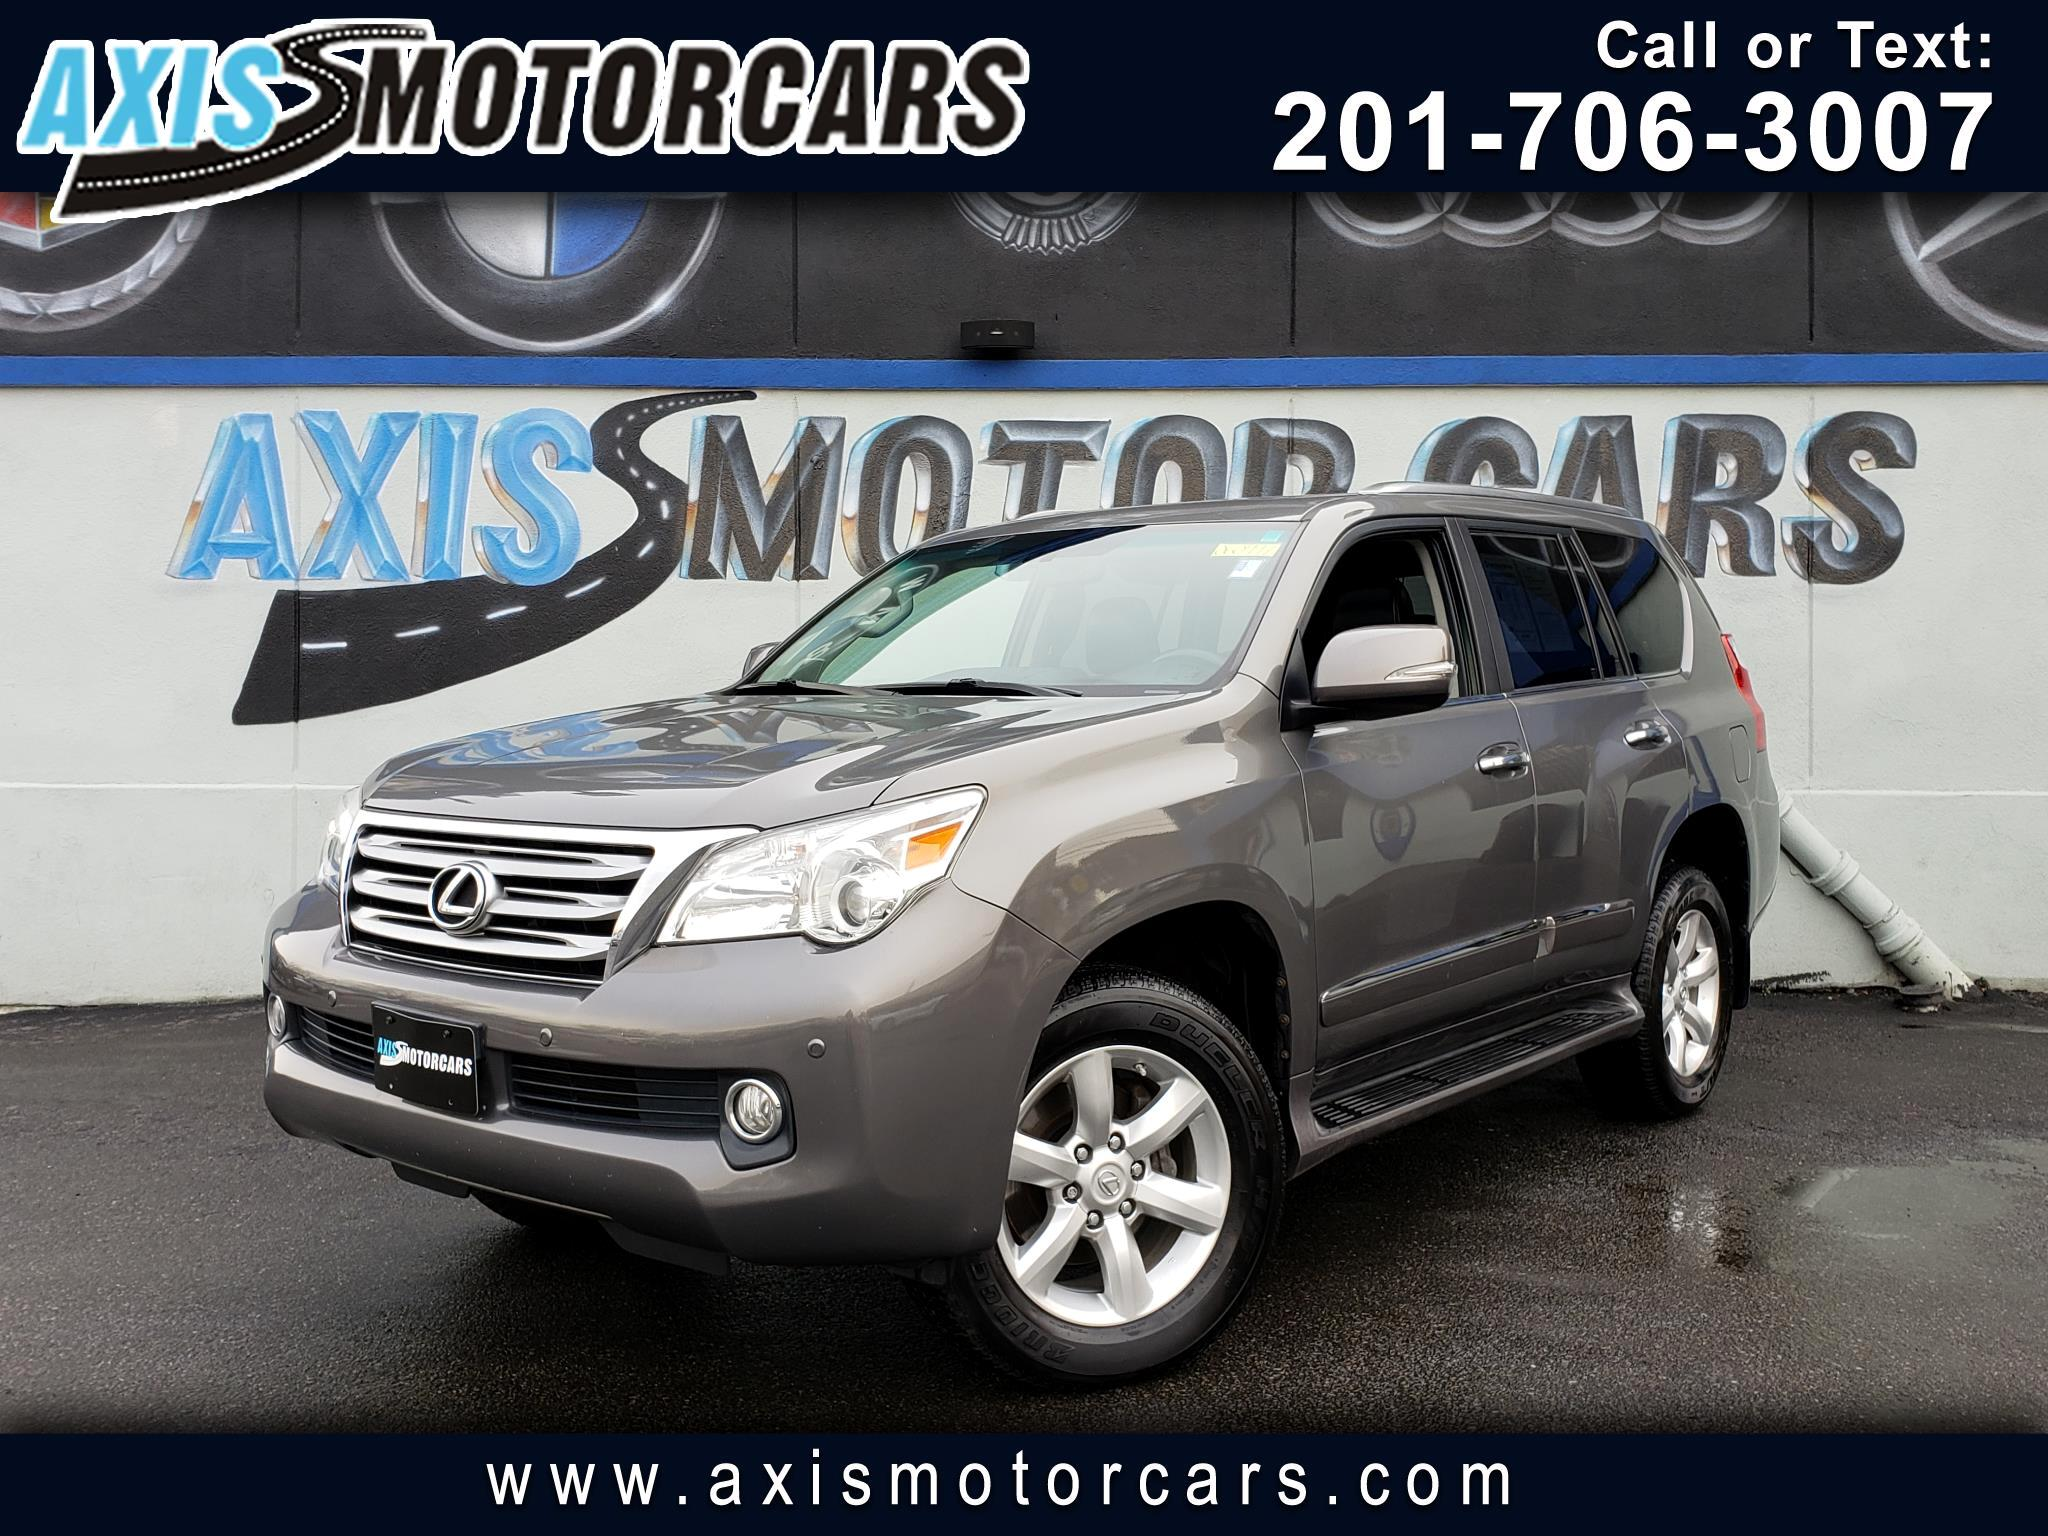 2013 Lexus GX 460 w/Third Row Seat Navigation Bakup Camera Sun Roof